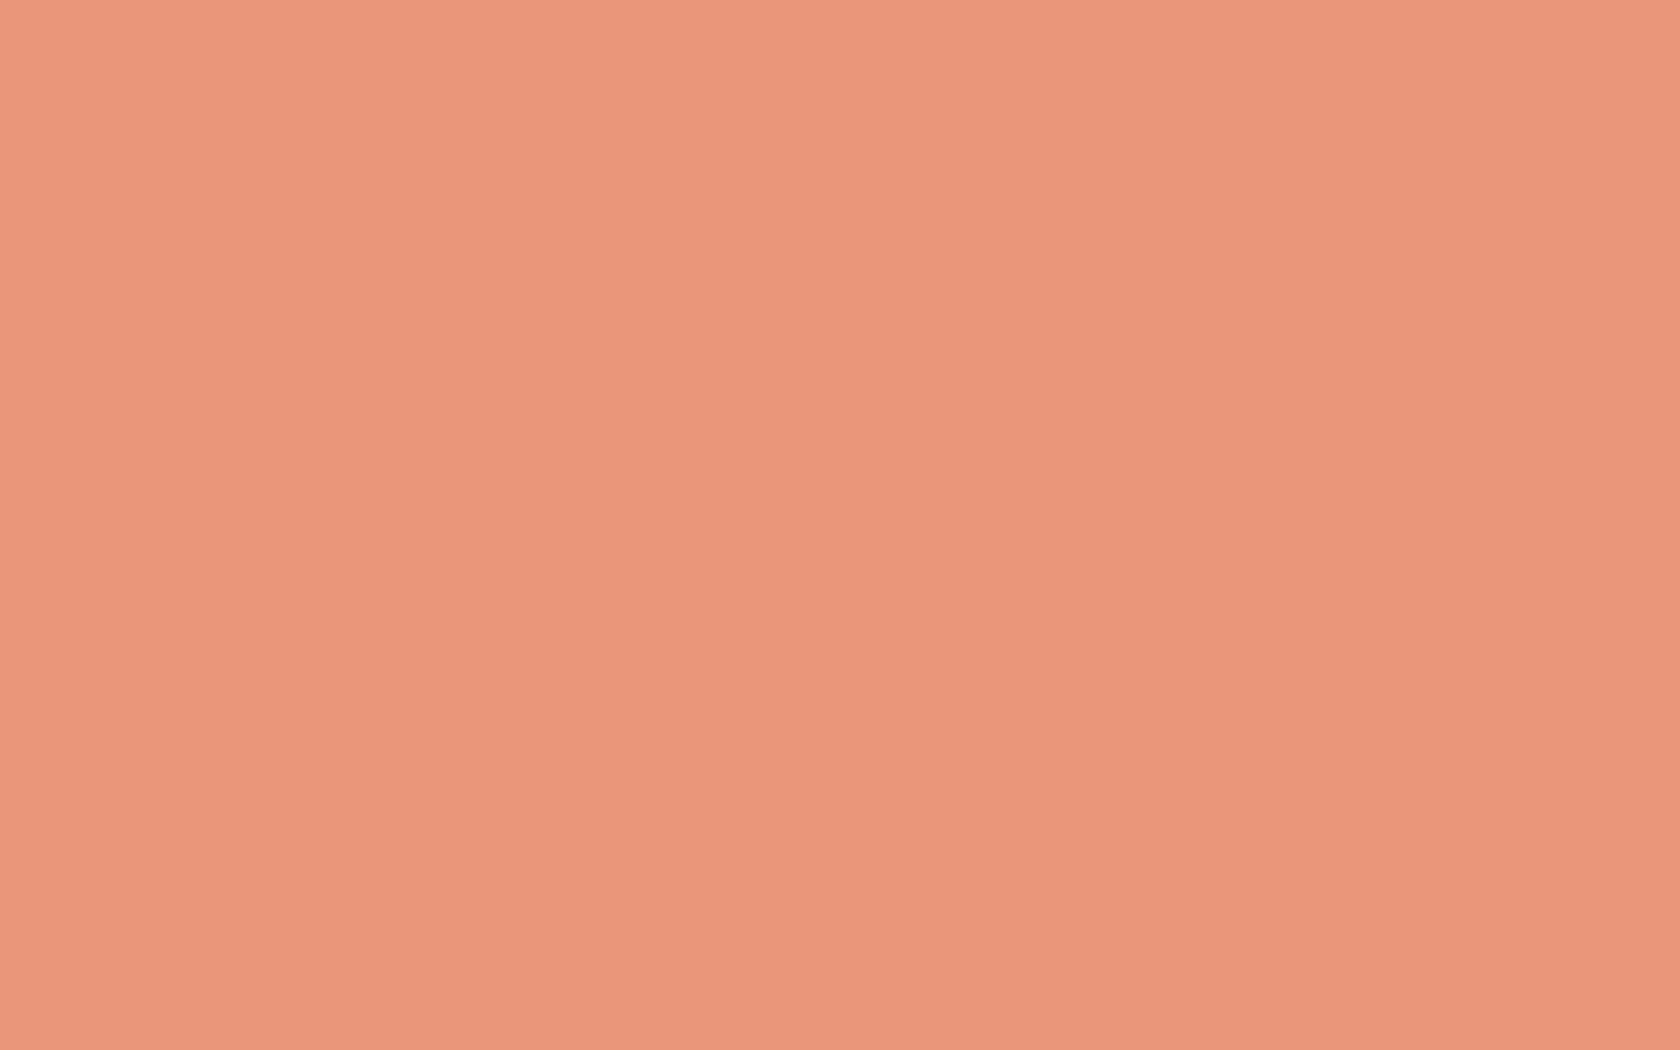 1680x1050 Dark Salmon Solid Color Background